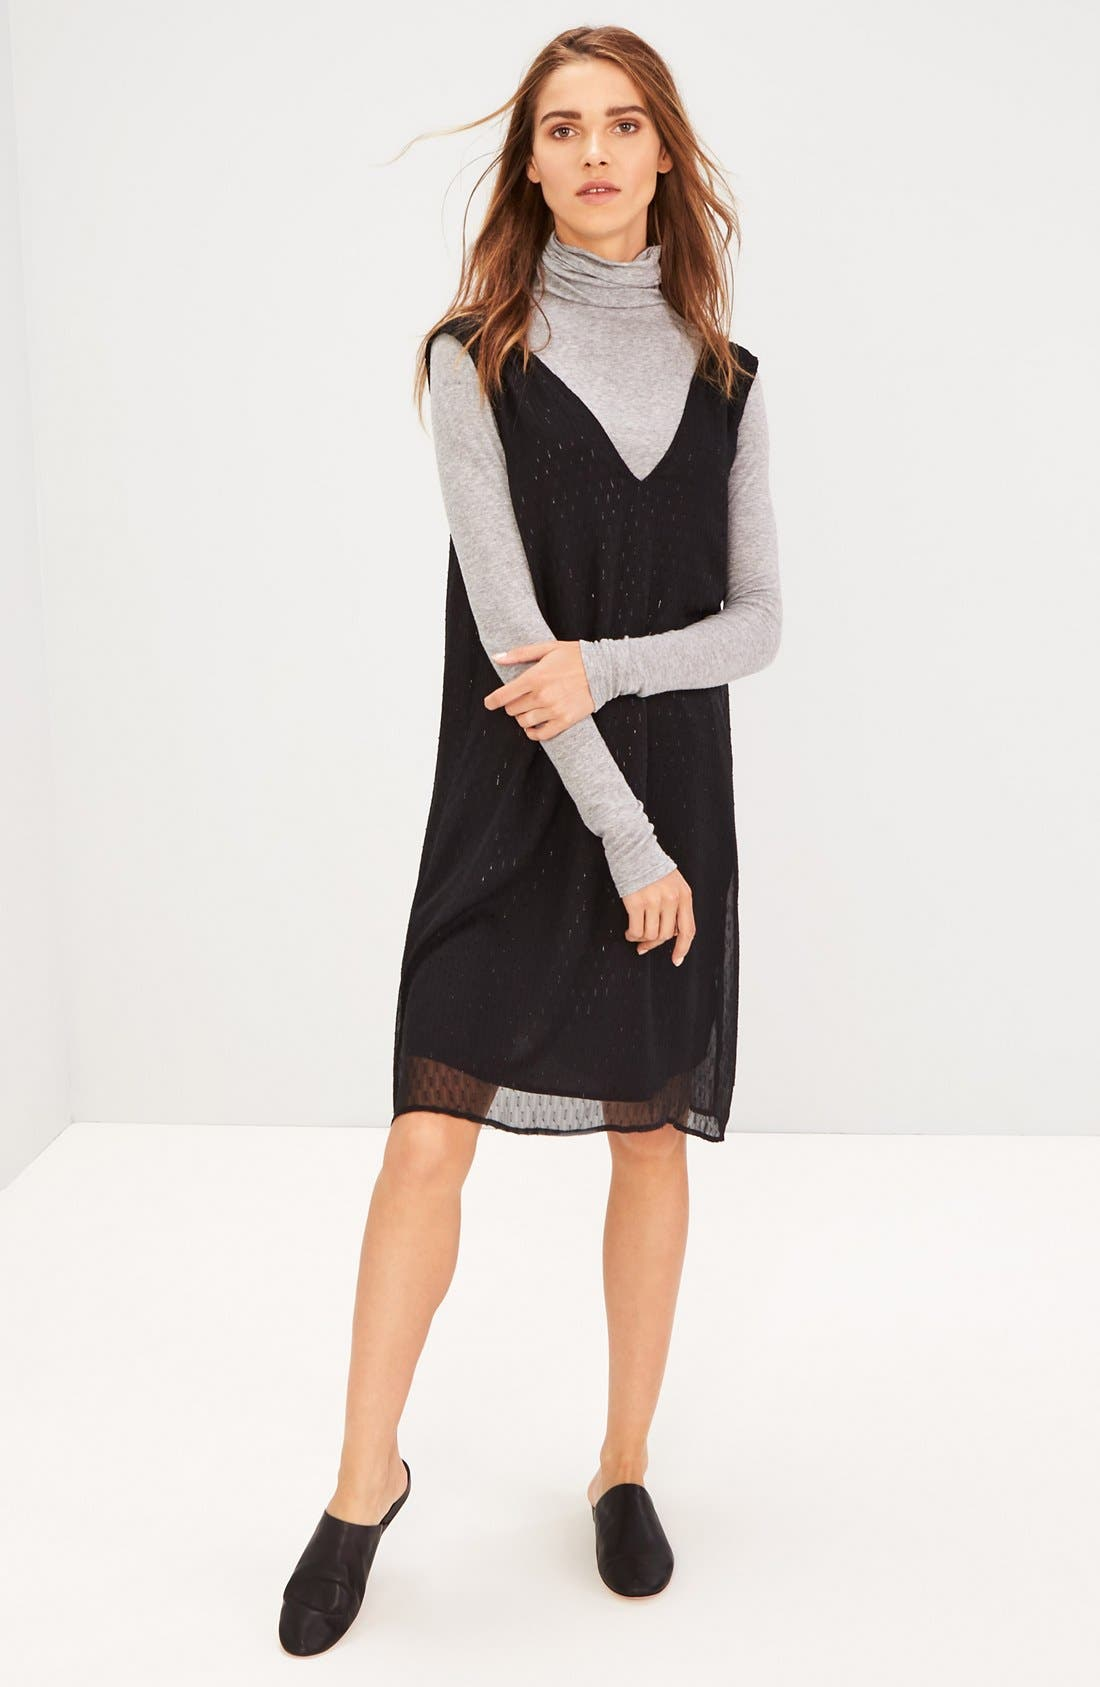 Madewell Dress & Chelsea28 Turtleneck Outfit with Accessories